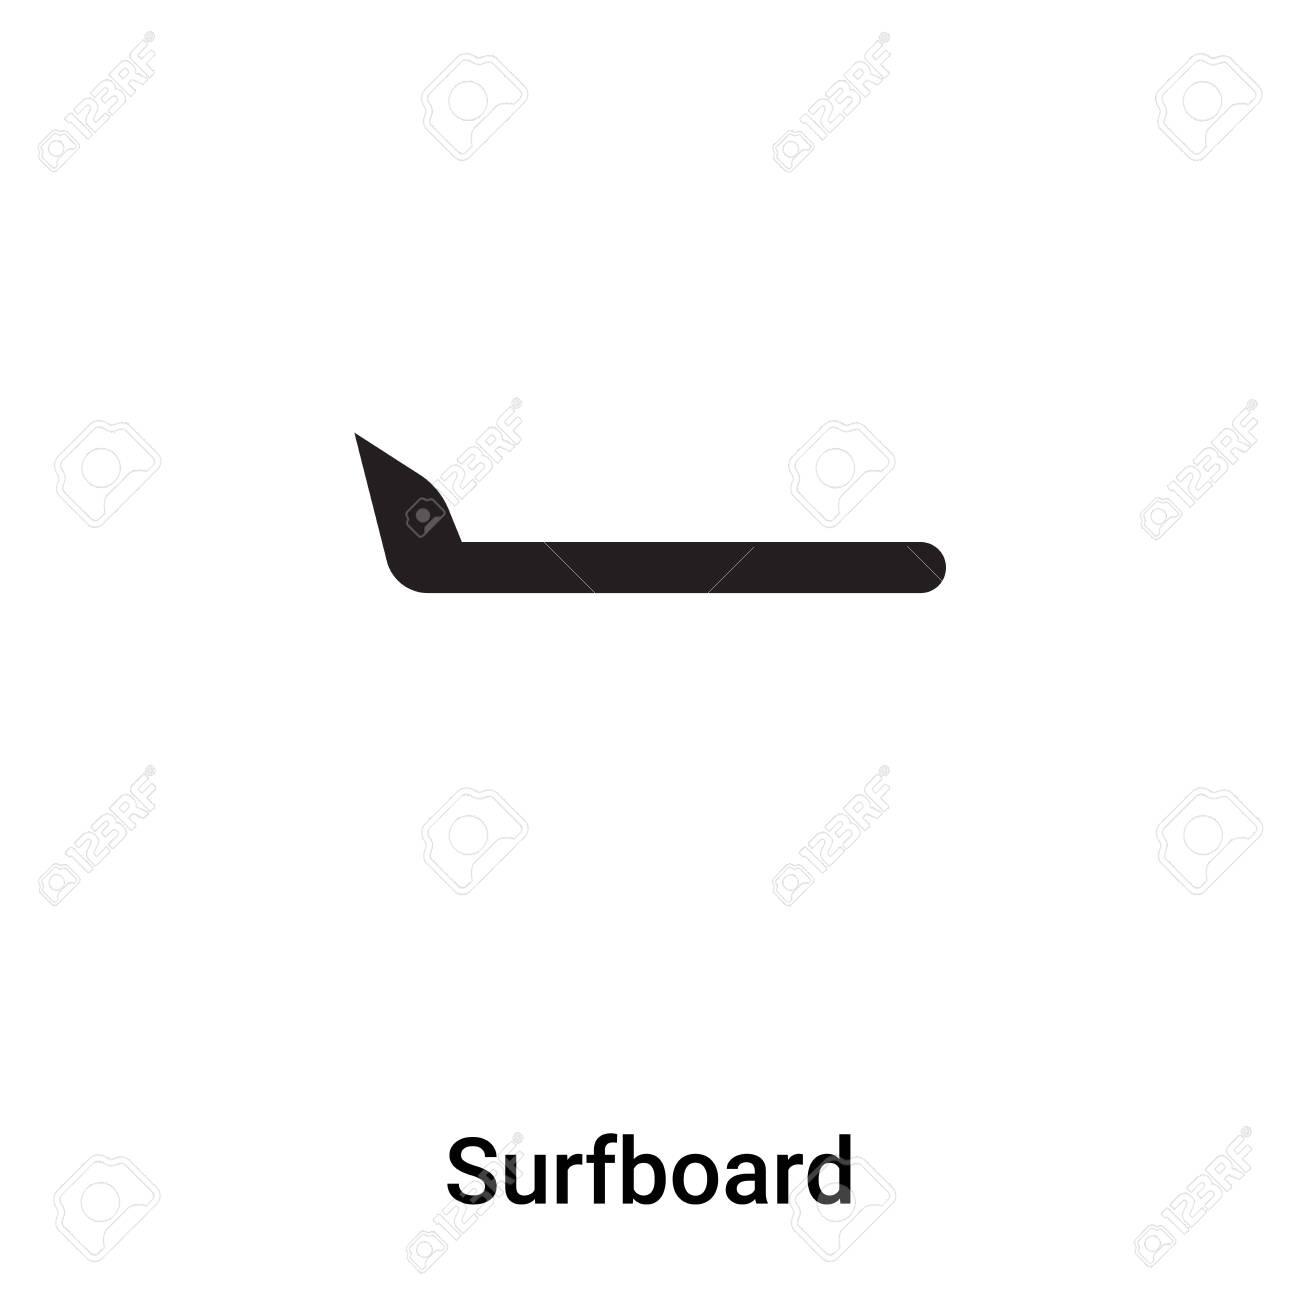 Surfboard icon vector isolated on white background, concept of Surfboard sign on transparent background, filled black symbol - 121530598